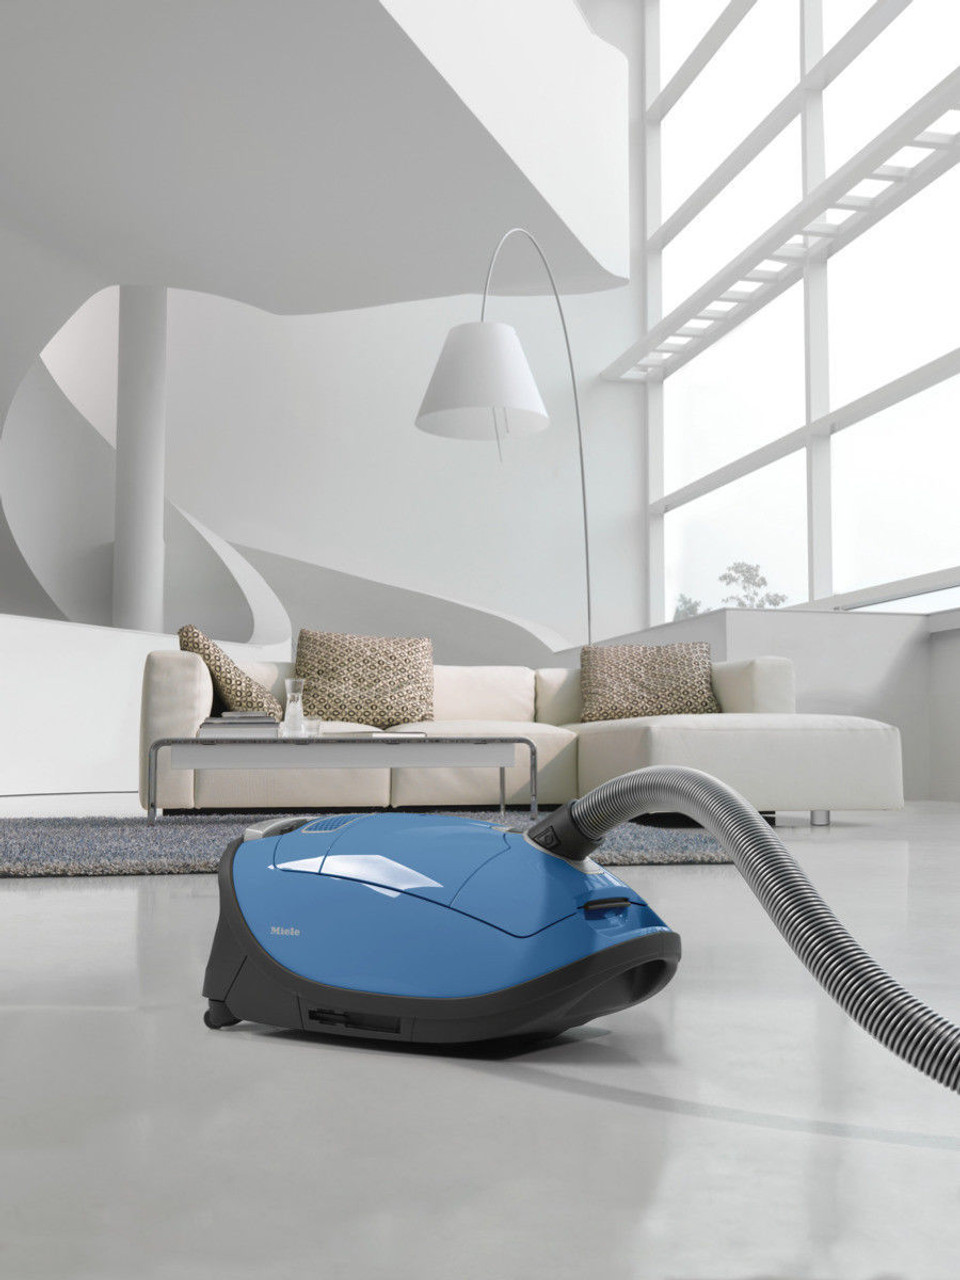 NEW 2018 Miele 10797840 Complete C3 Allergy PowerLine Vacuum Cleaner - Tech Blue - HURRY LAST 8!